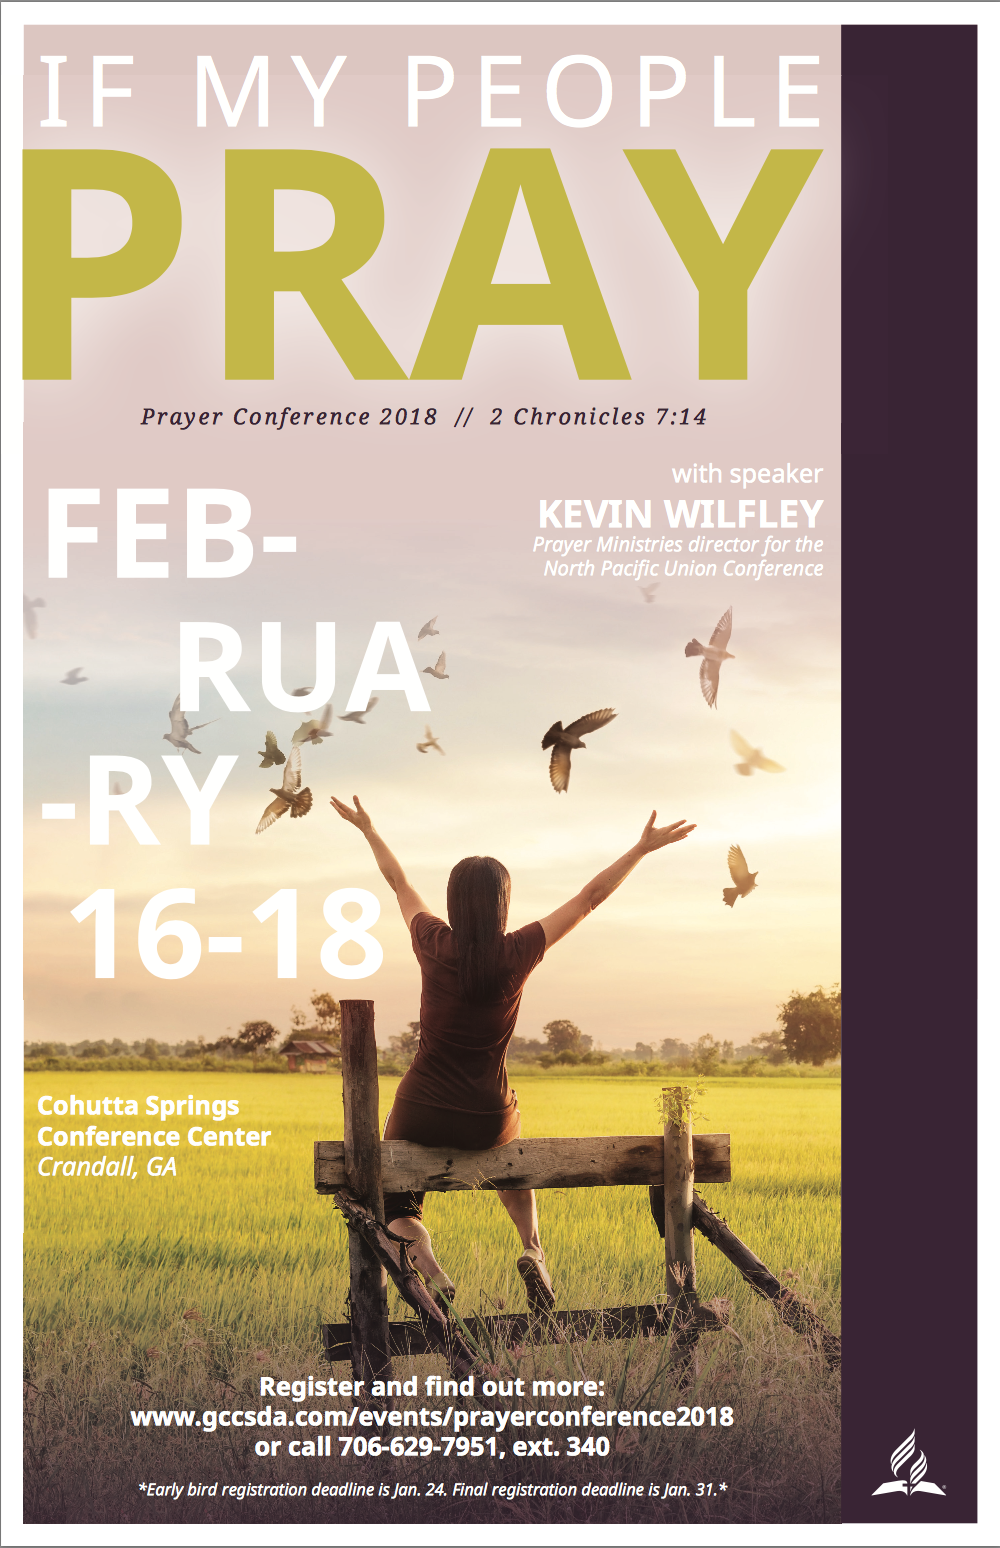 Hurry folks the Early Bird Deadline is Jan. 24th  Register online or contact the Pastor for help.